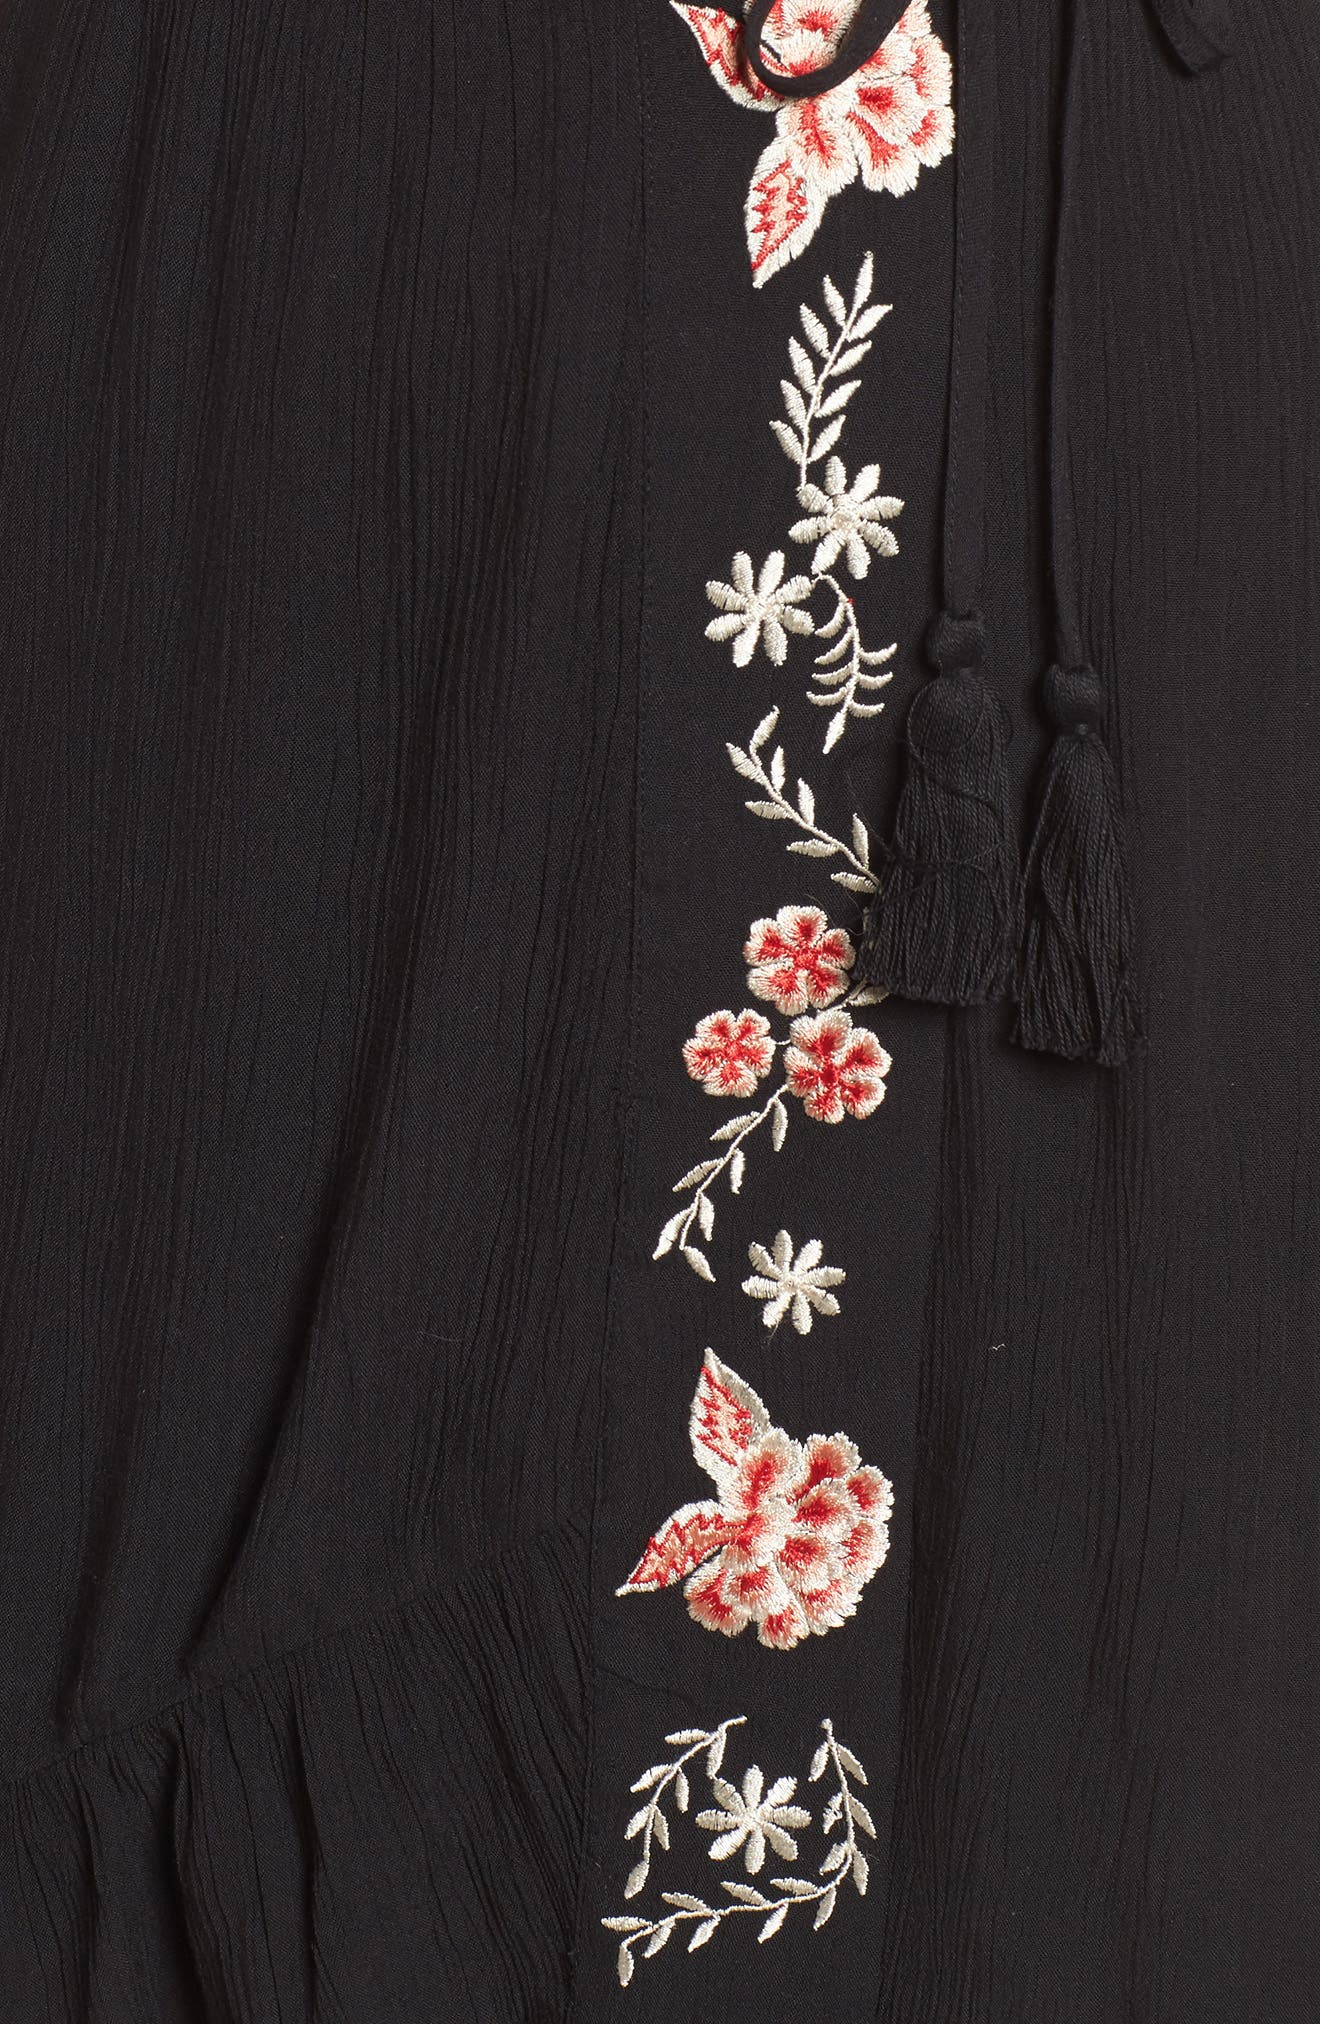 Floral Embroidered Faux Wrap Dress,                             Alternate thumbnail 5, color,                             Black/ Red